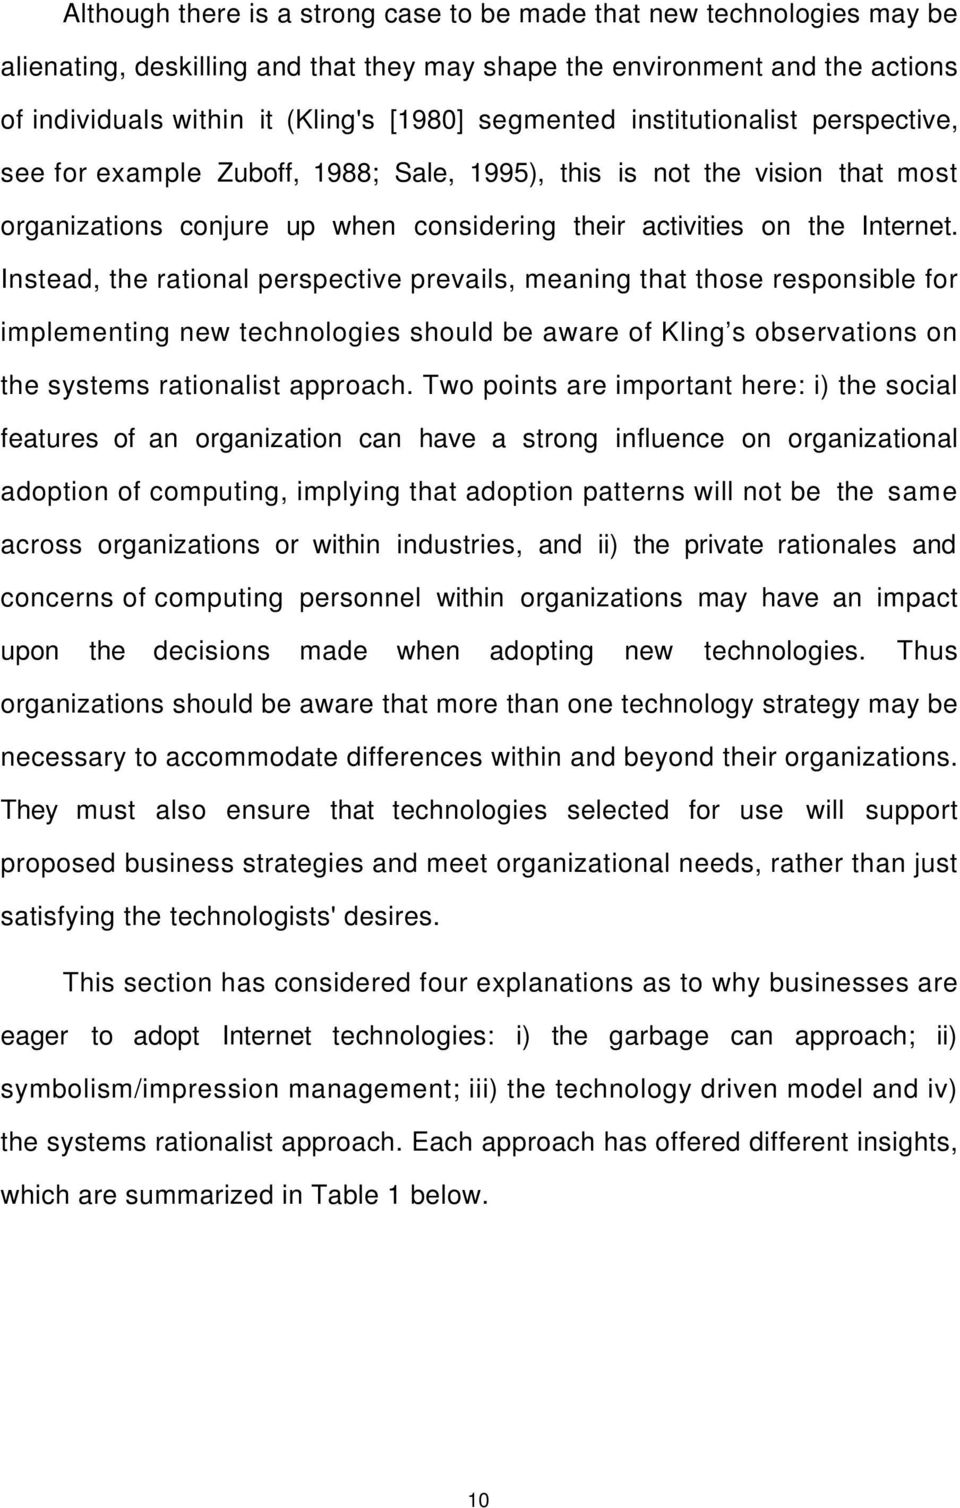 Instead, the rational perspective prevails, meaning that those responsible for implementing new technologies should be aware of Kling s observations on the systems rationalist approach.